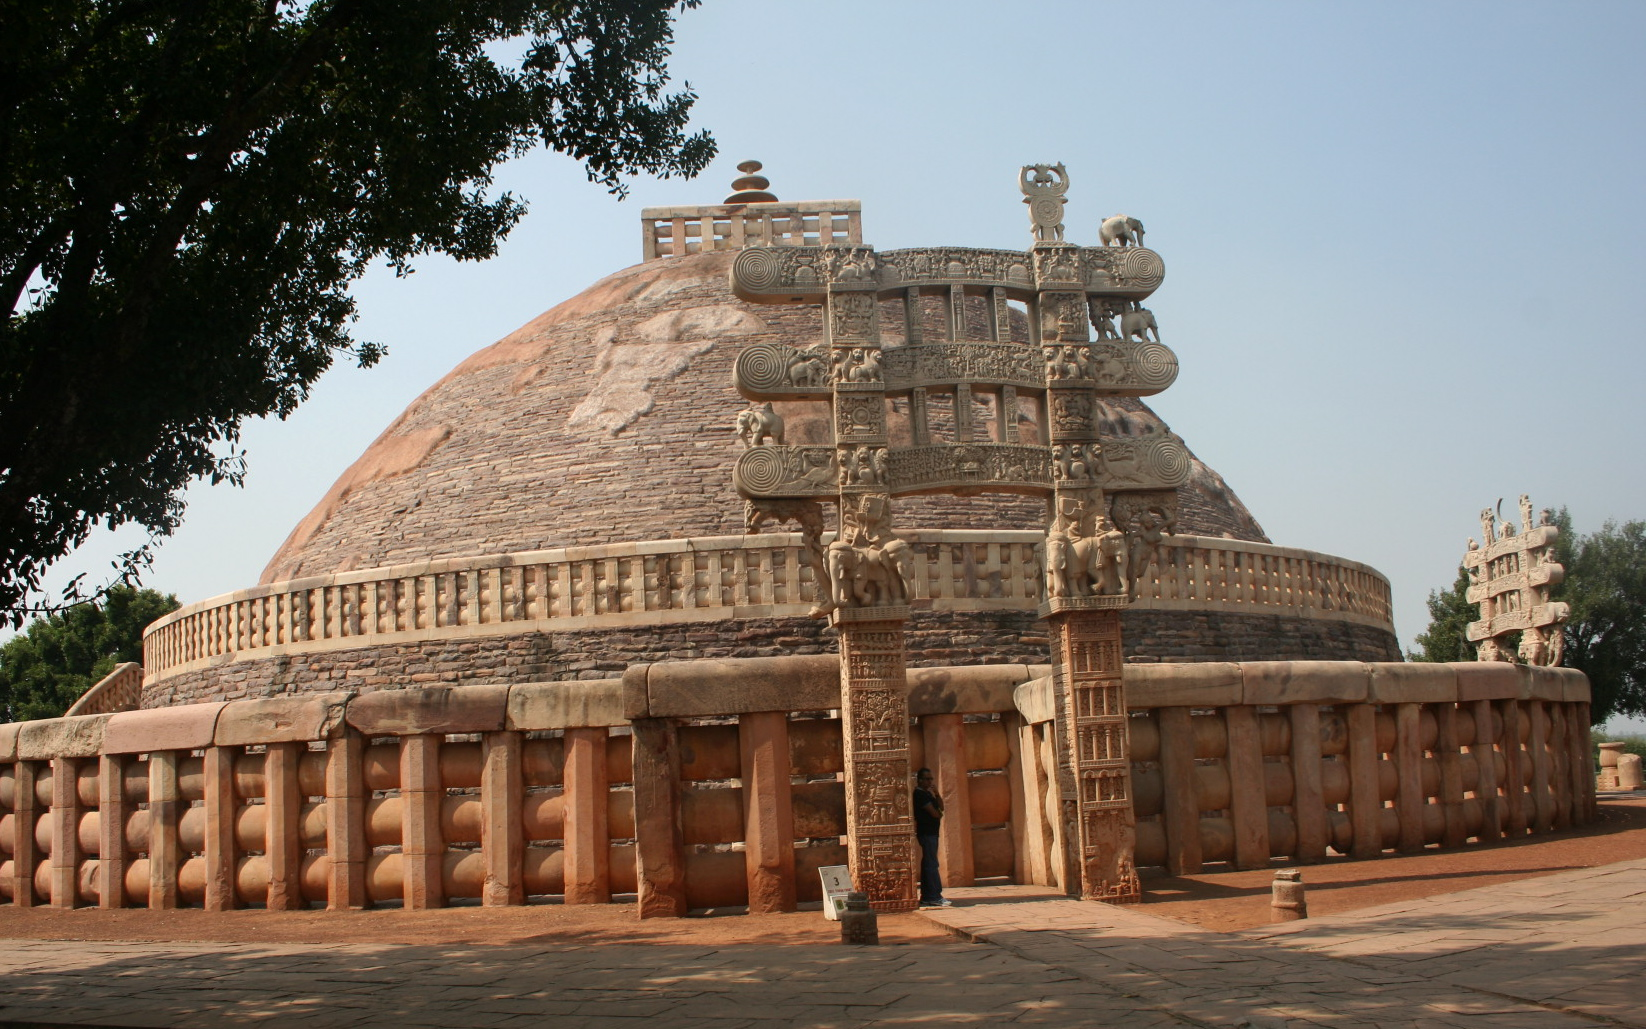 Sanchi Stupa Wallpaper Hd: Sanchi Stupa Historical Facts And Pictures